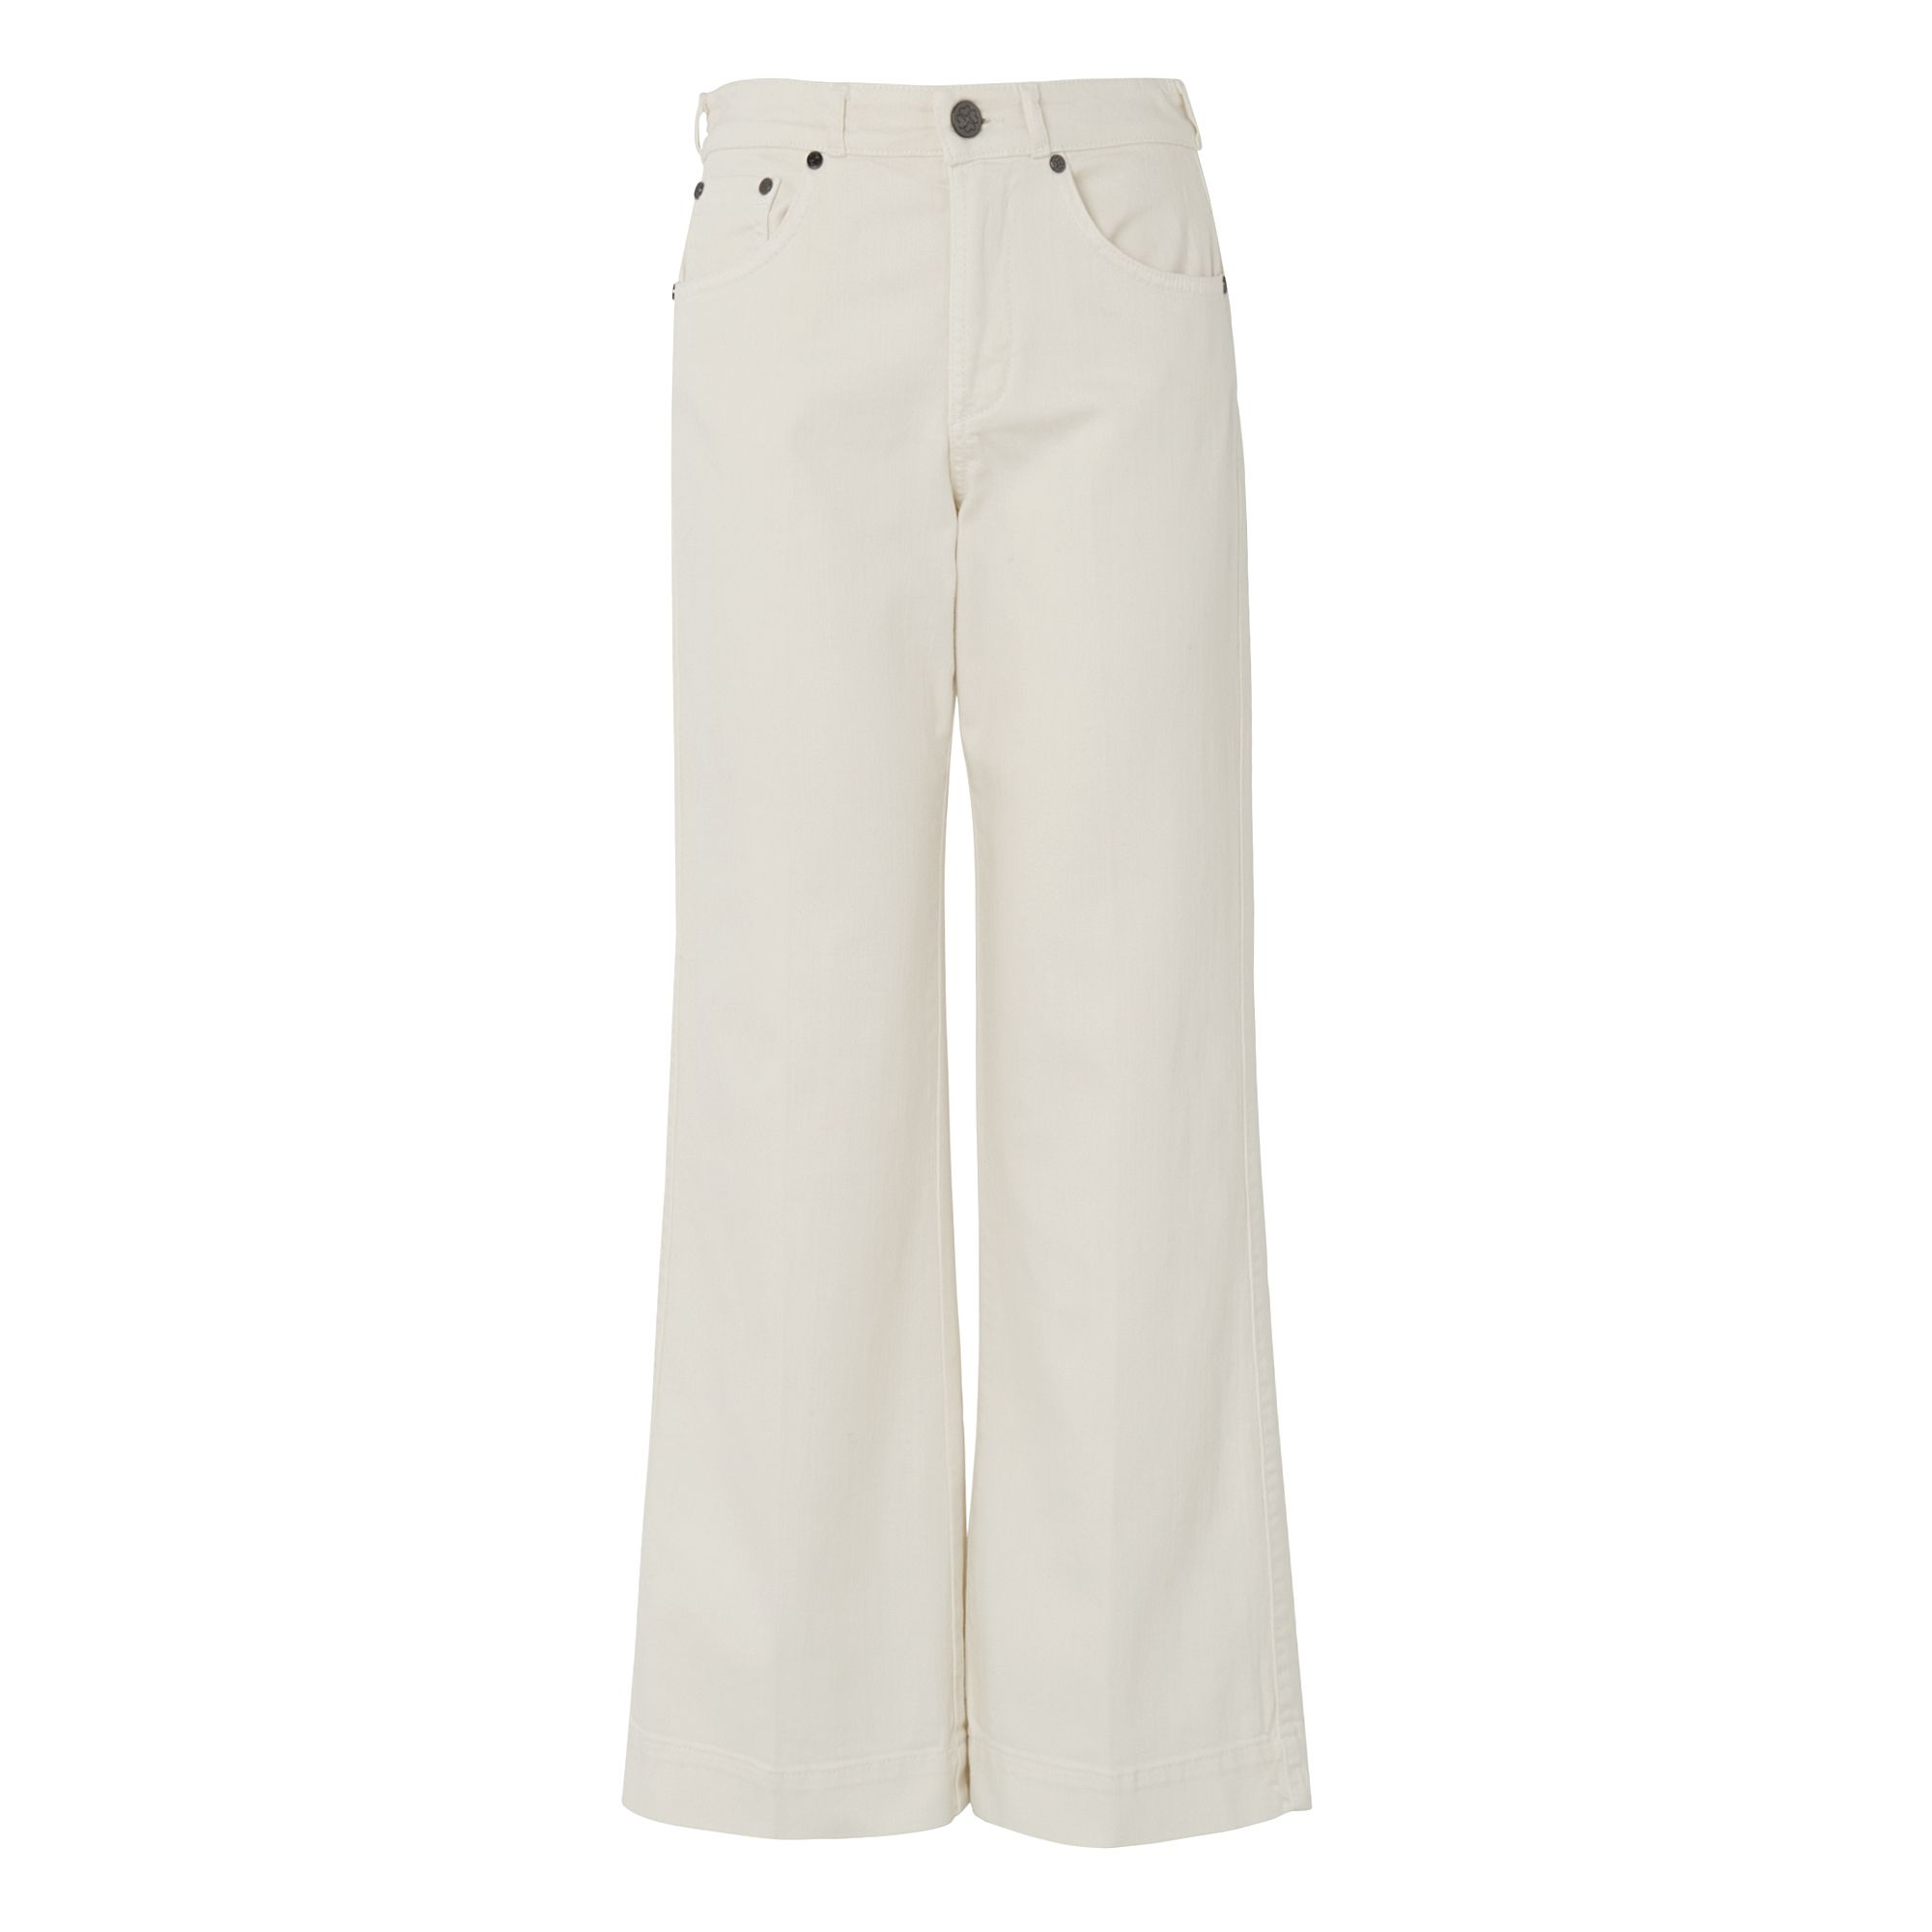 L.K. Bennett Alexis Flared Crop Trousers, Cream